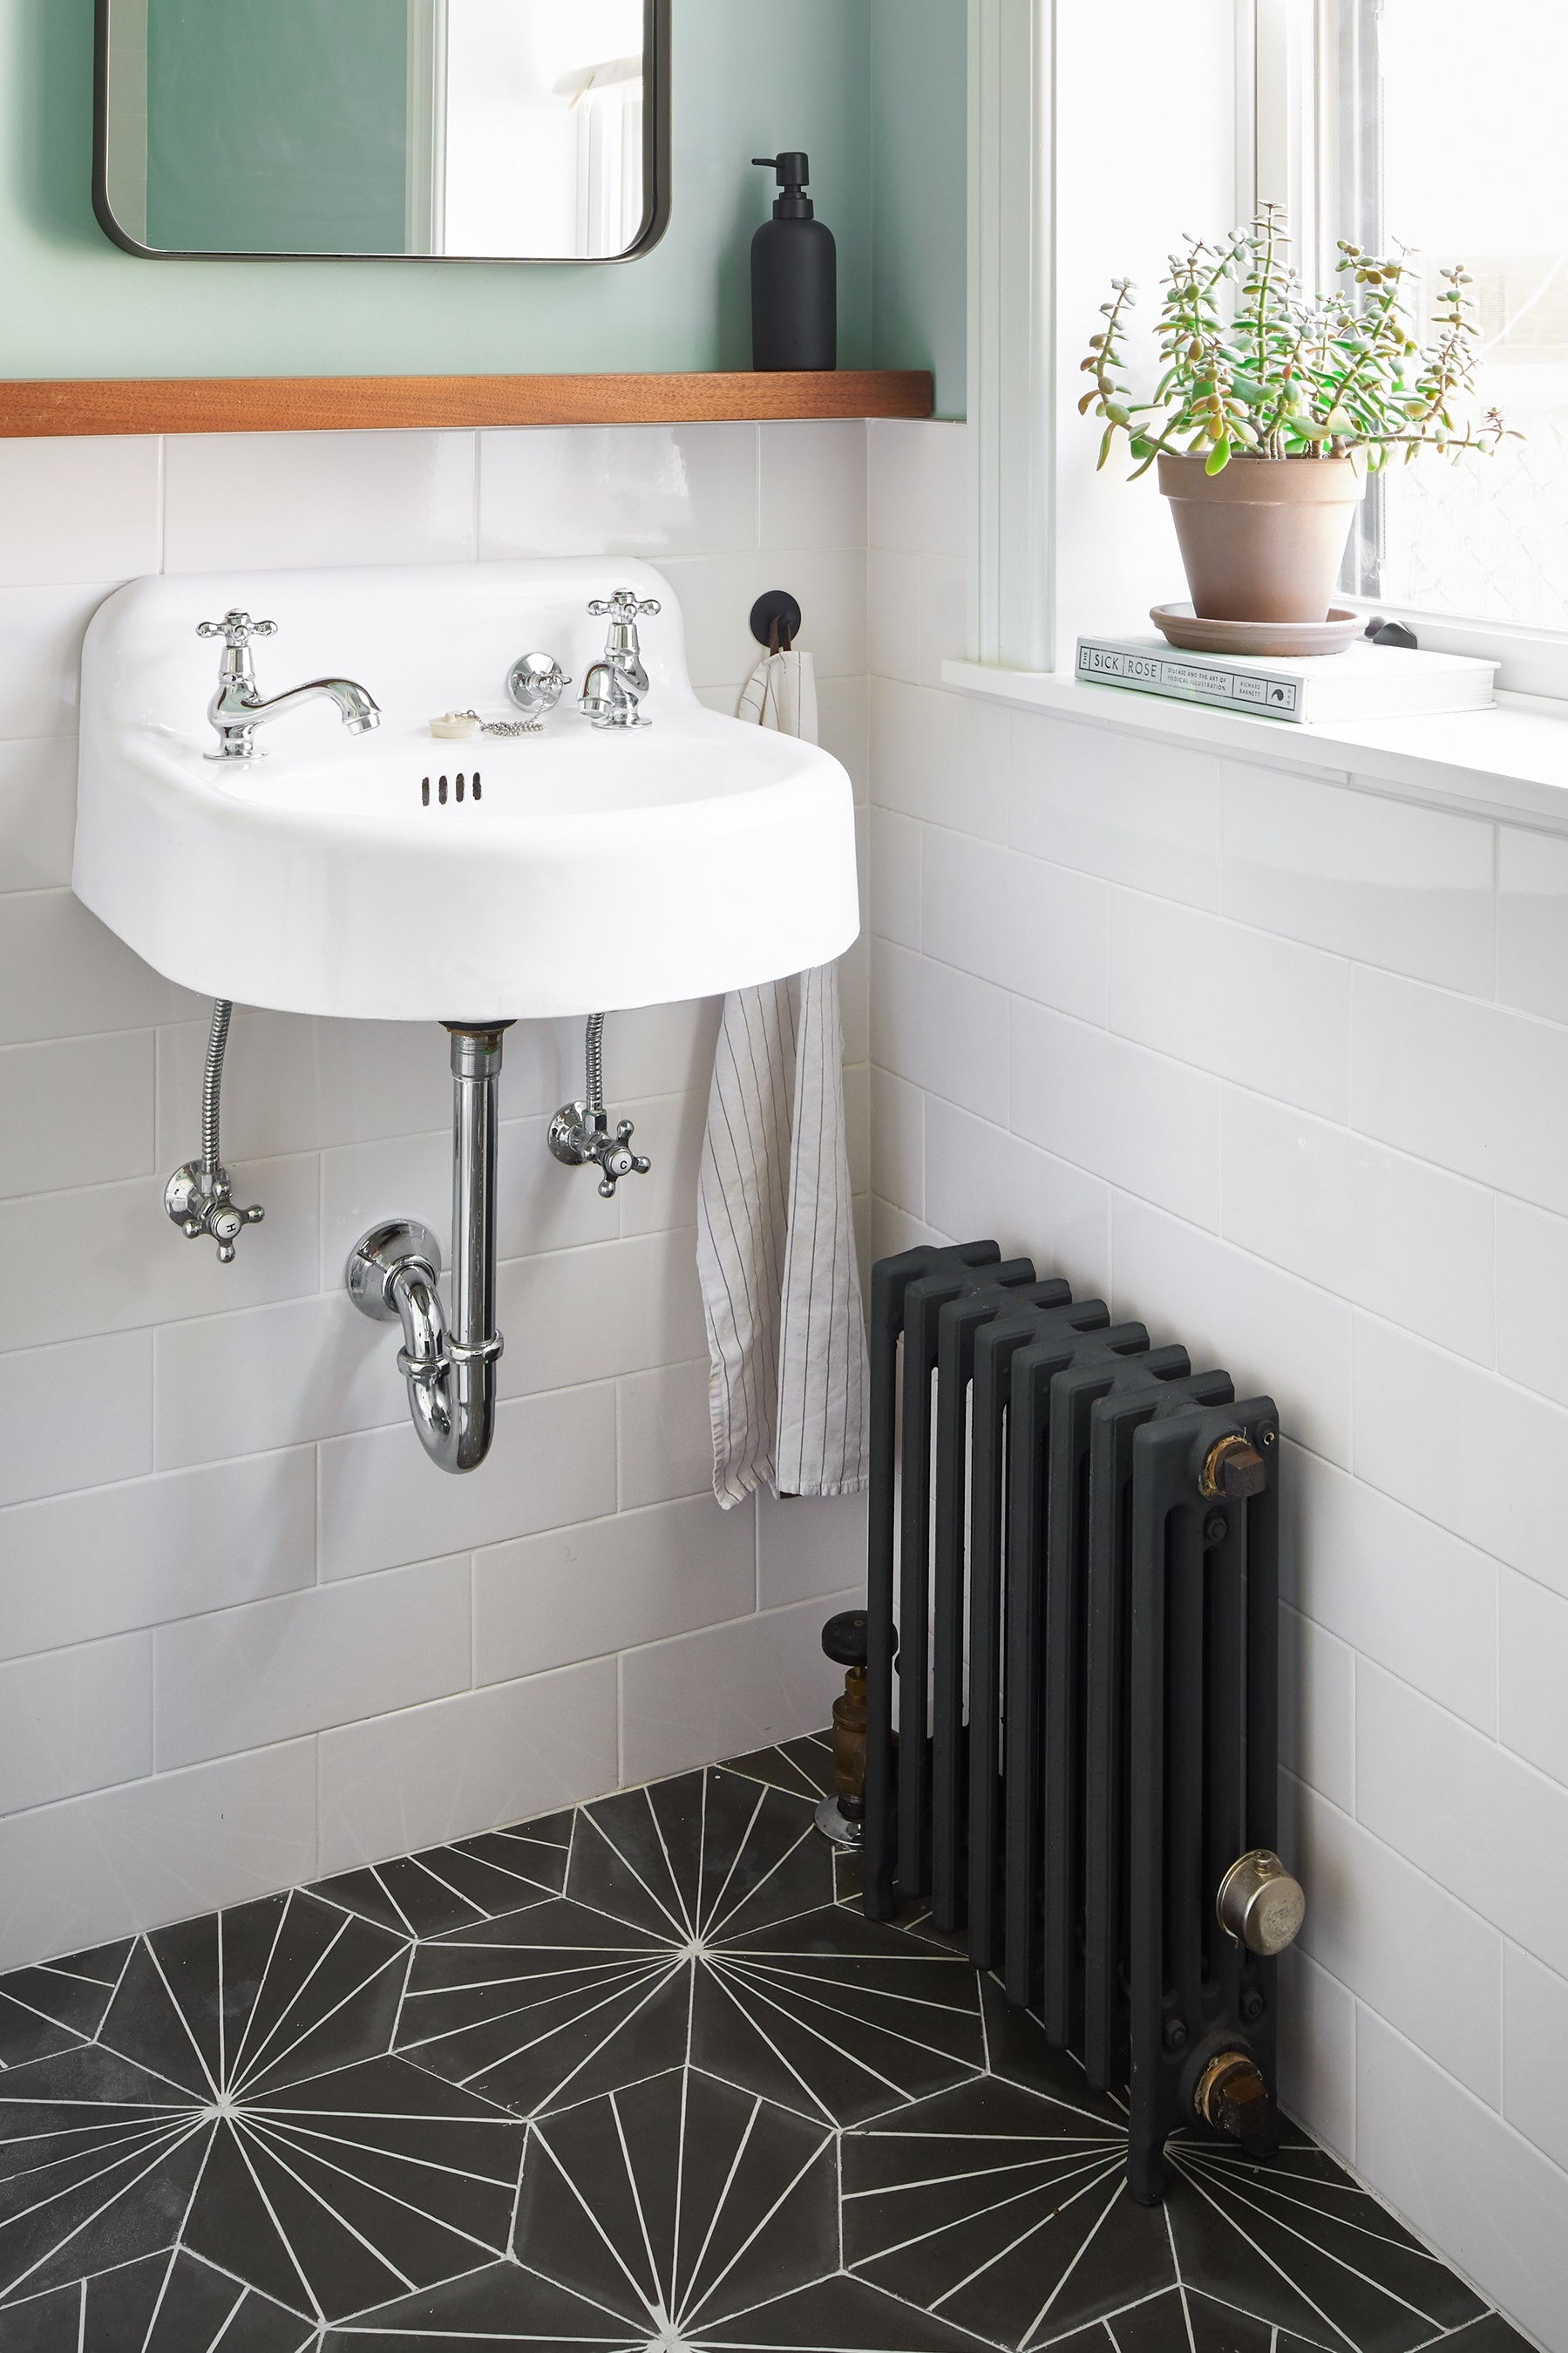 104-prospect-manor-bath-sink-radiator-detail.jpg